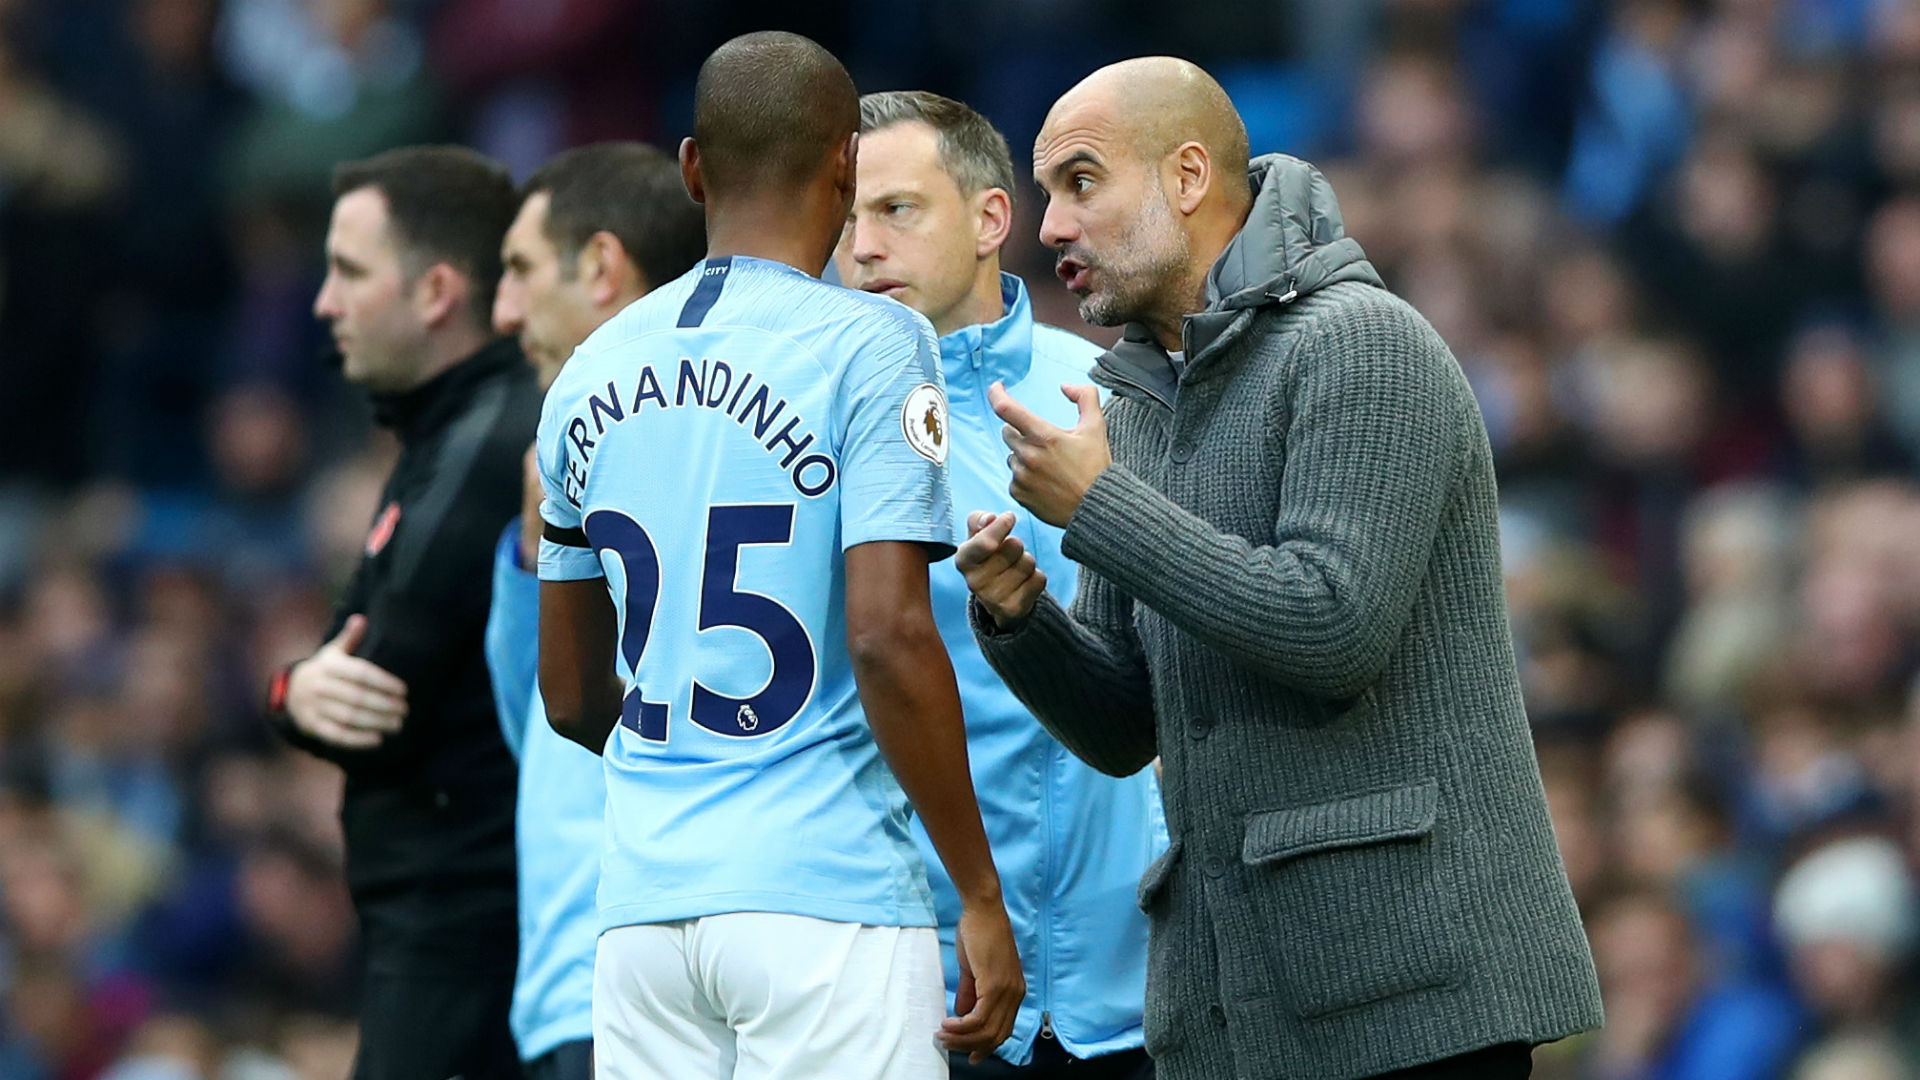 Pep Guardiola asked to explain pre-derby referee comments